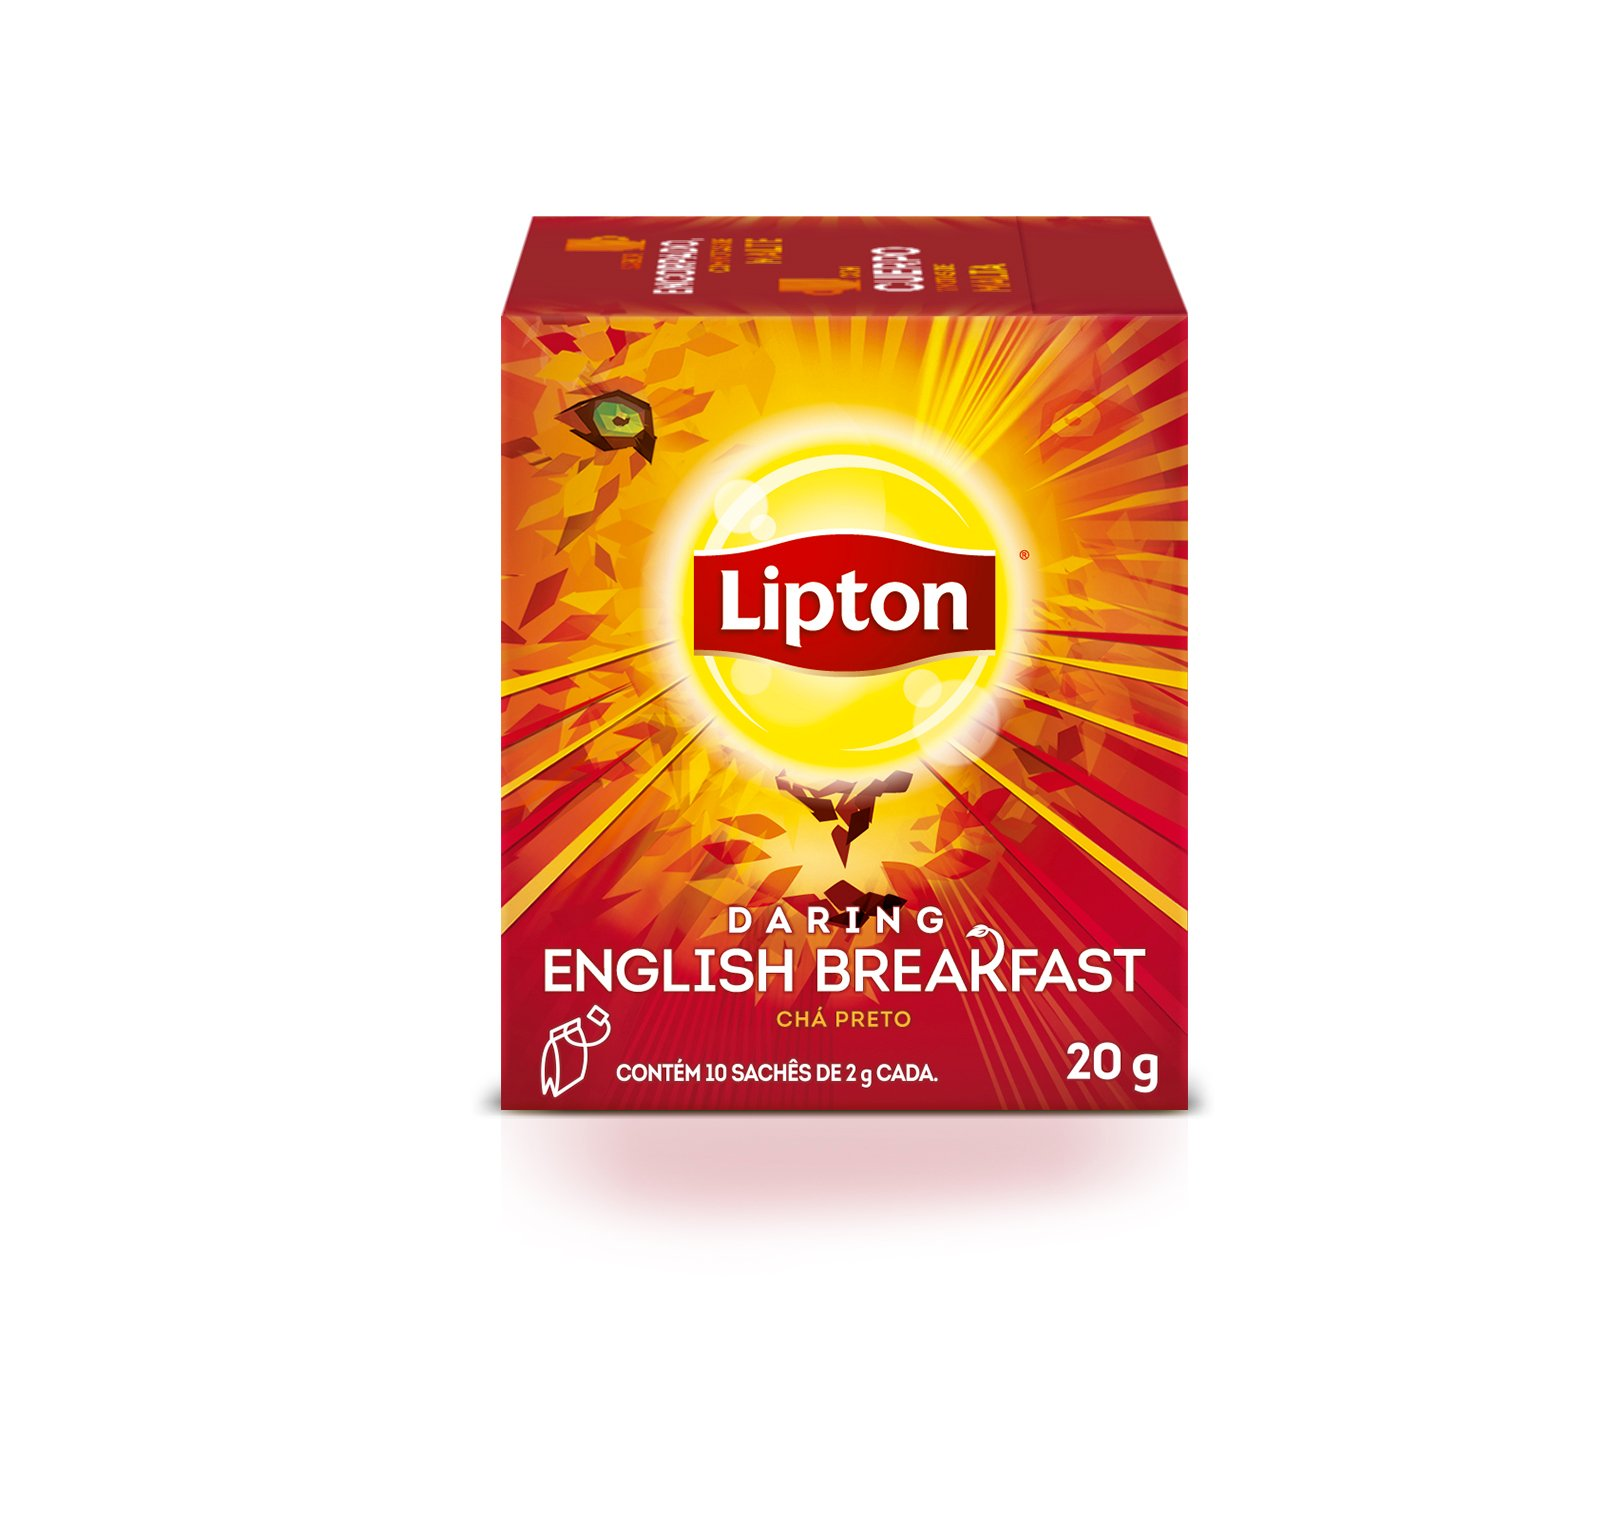 Chá Preto Lipton - English Breakfast